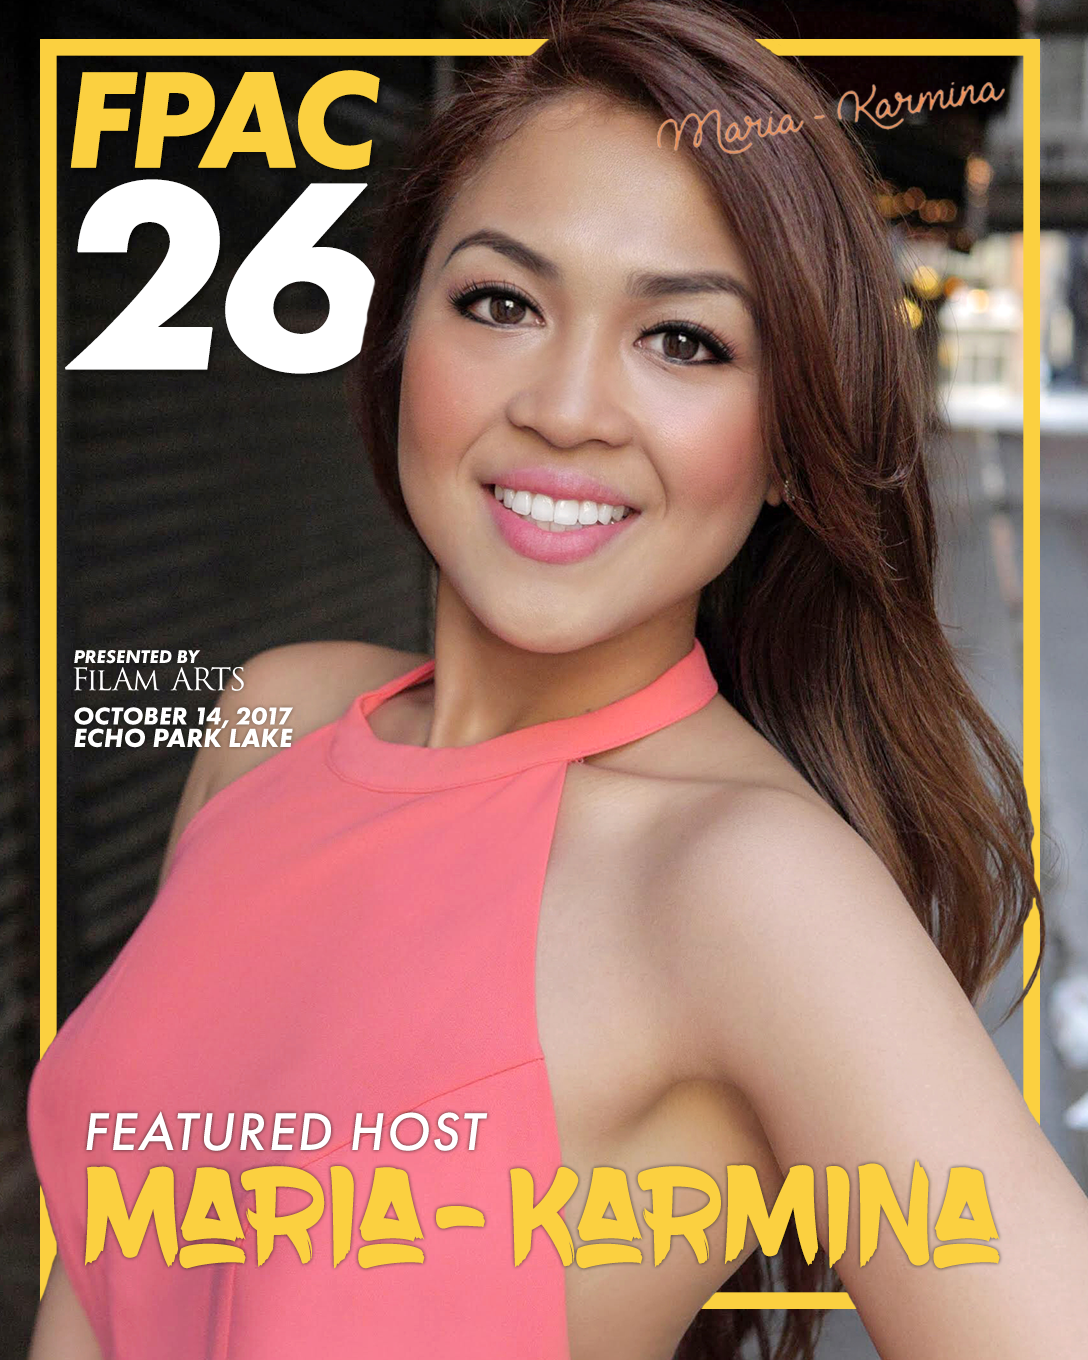 """Maria-Karmina - Born in the Philippines, Maria-Karmina came to the U.S. at age three and was taught from early on by her father that everything was possible; but, as an immigrant, she often felt like an outsider. When she found her parents' typewriter and began to write, Maria-Karmina discovered the thing that made her feel like she belonged: telling people's stories and later becoming a journalist. Today, as a the """"Official Face"""" and Host of Myx TV -- a multicultural cable network that caters to Asian-Americans -- Maria-Karmina has her sights set on becoming a household name despite the odds. You can find her preaching about the power of vision, how she slept on her friend's couch for months, determined to break into journalism and overcoming prejudice to follow your dream no matter what limitations others put on you. The power of imagination and vision. Her advice for breaking into journalism. Faking it until you make it. Why your journey may include some twists and turns. Speaking your dream into existence. Understanding the law of attraction. Recognizing how powerful your words are. The importance of having love in your life. That is what she represents.Maria-Karmina's Website@mariakarmina"""